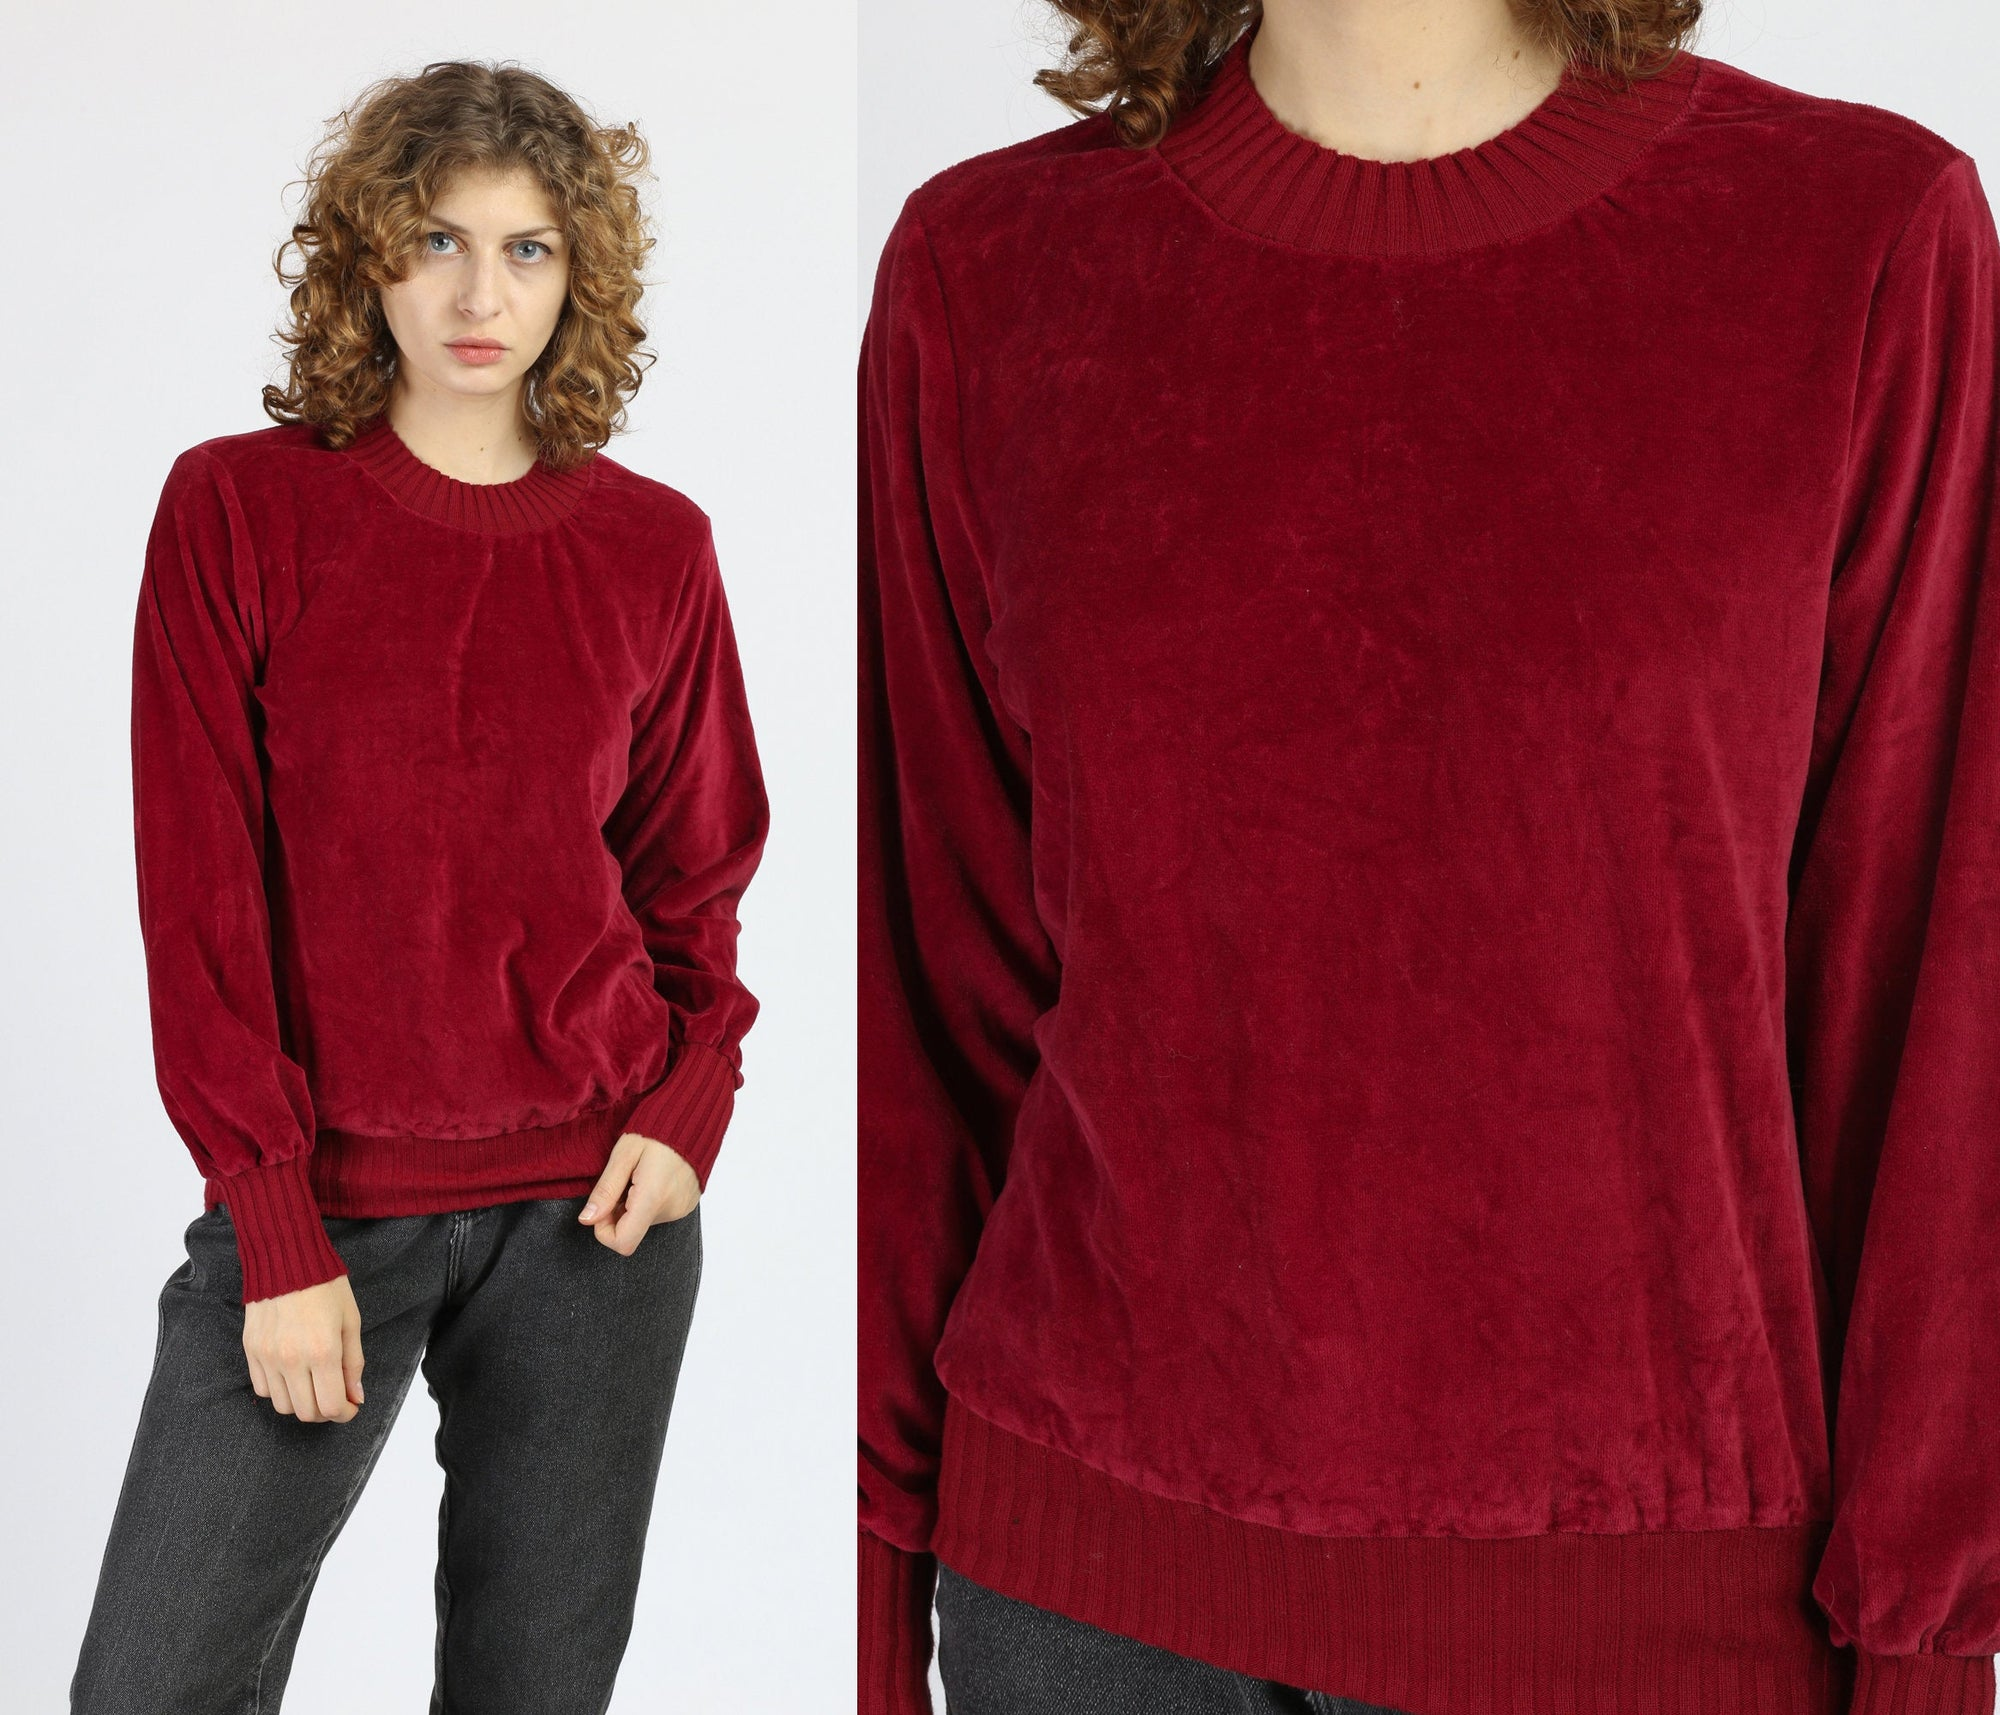 70s Red Velour Long Sleeve Top - Medium